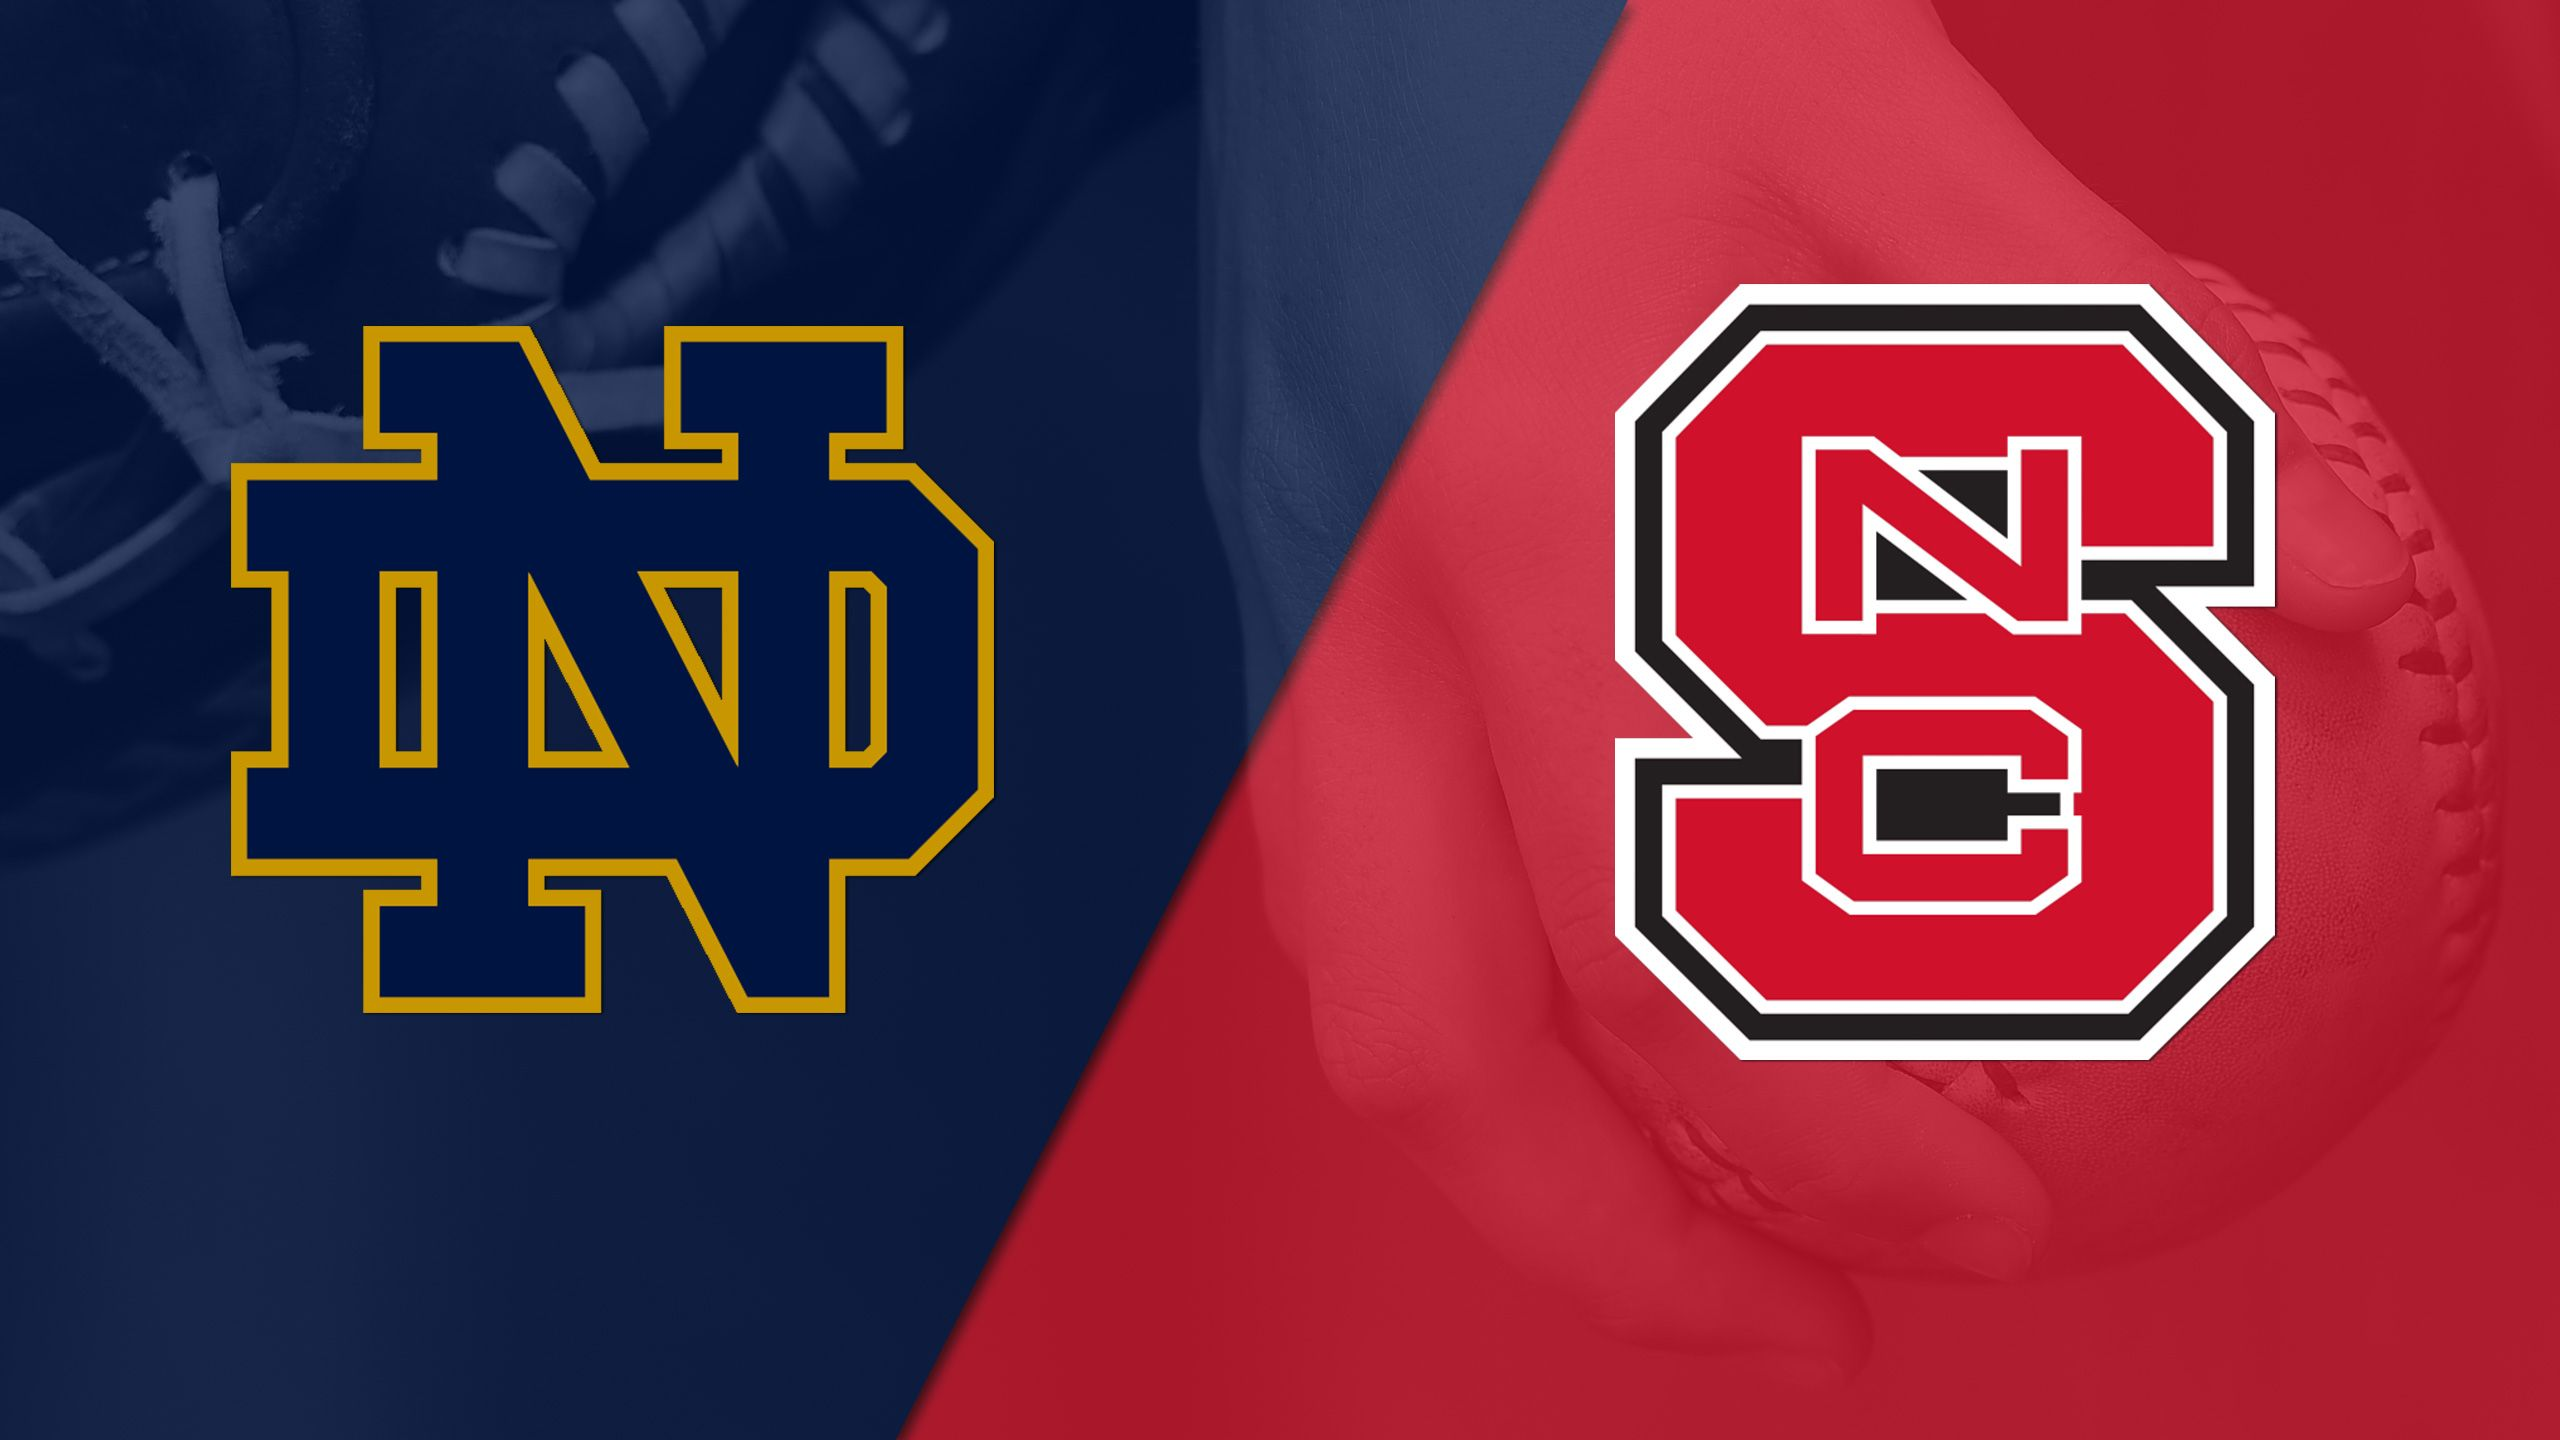 Notre Dame vs. NC State (Softball)